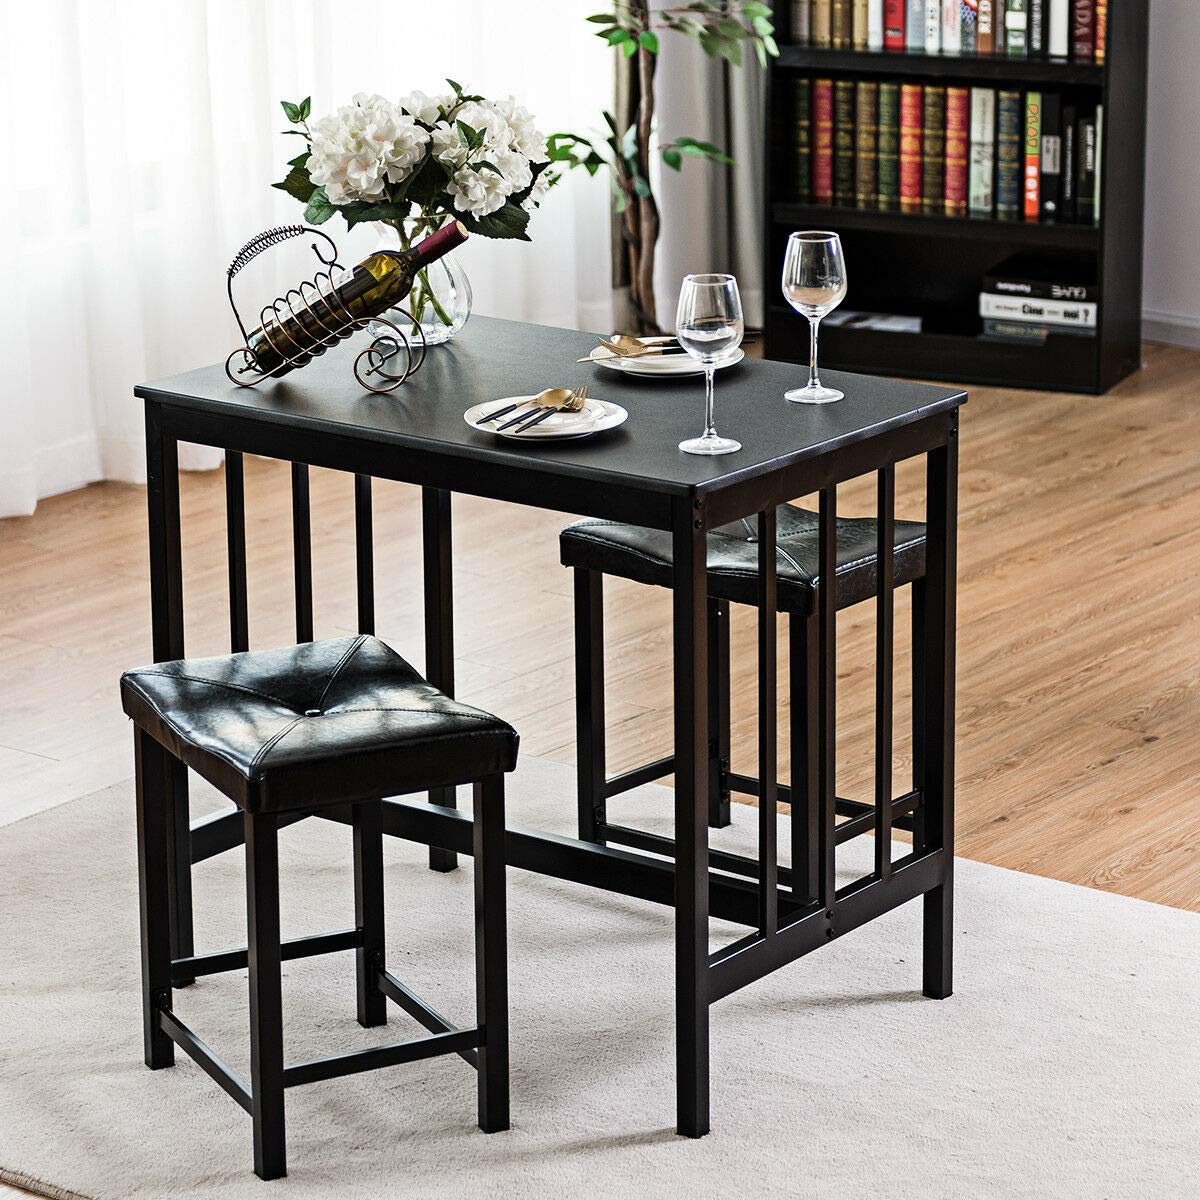 Stark Item 3 PCS Modern Counter Height Dining Set Table and 2 Chairs Kitchen Bar Furniture